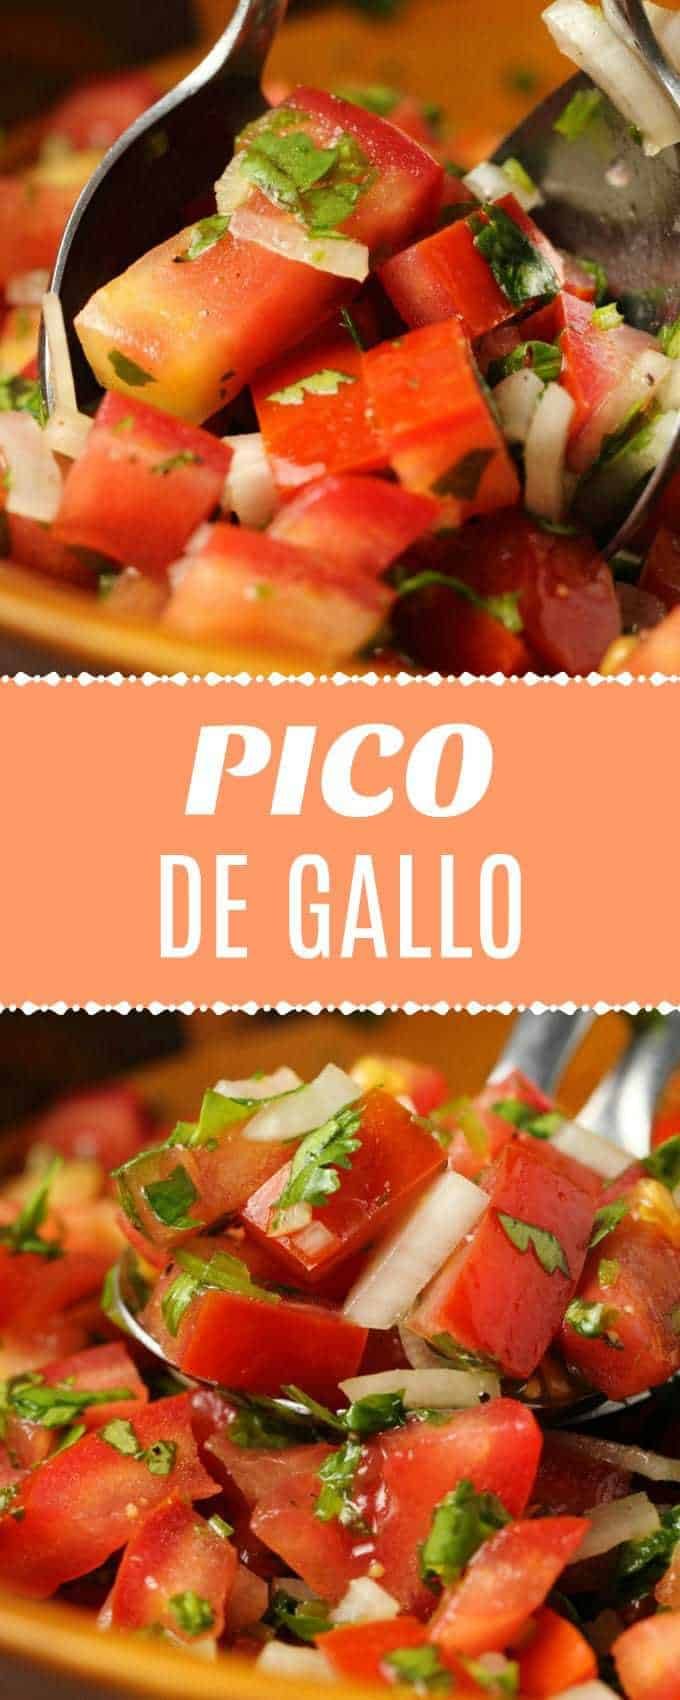 Deliciously fresh pico de gallo! This salsa is fast and easy and makes a delicious topping or dip and is a perfect side to all your favorite Mexican food. | lovingitvegan.com